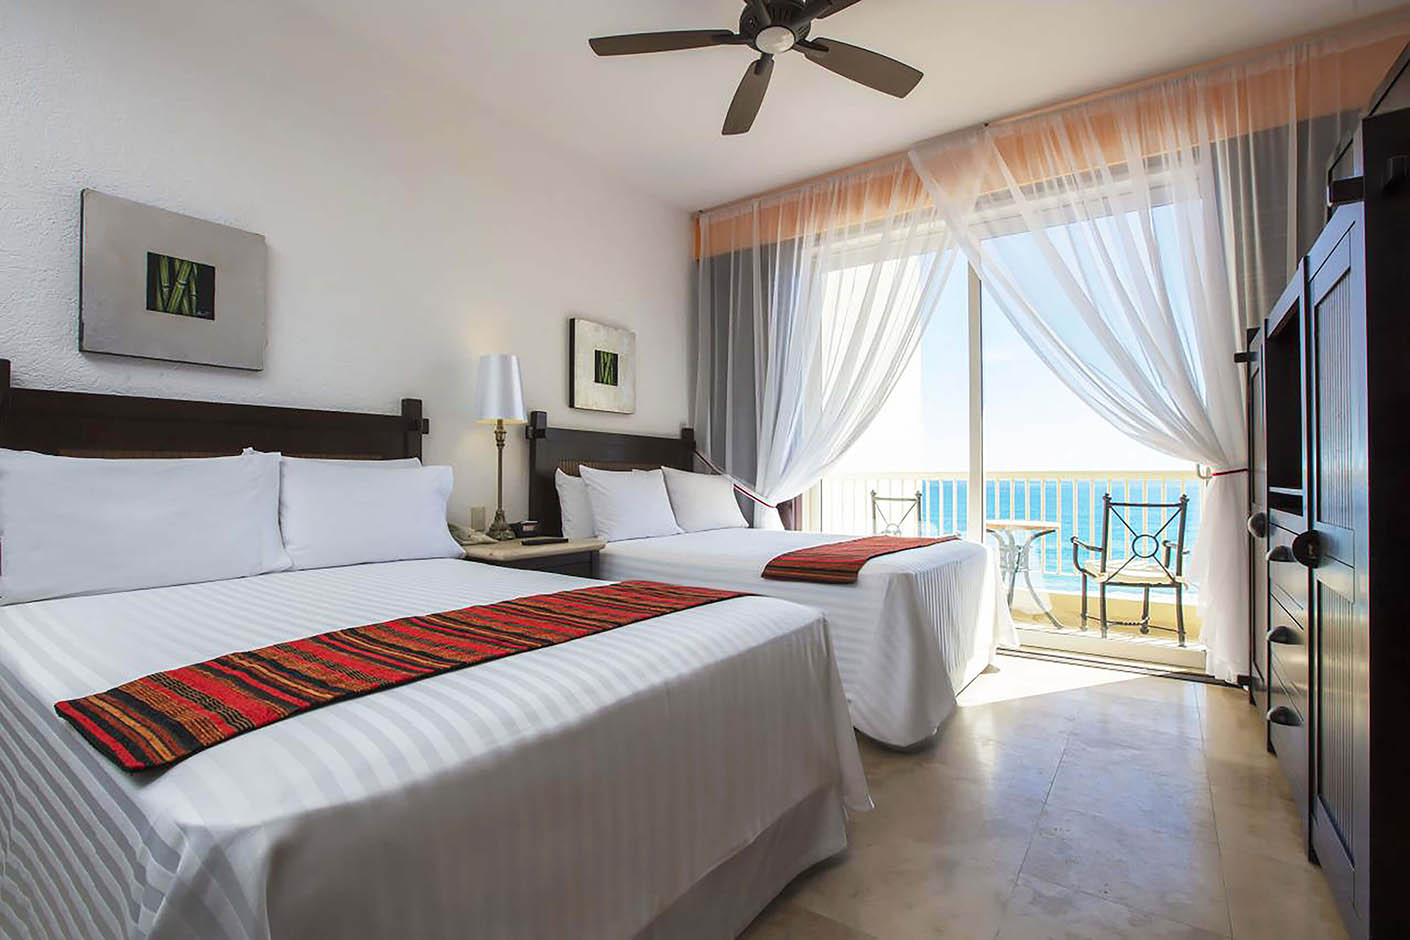 hotel room with two double beds and balcony overlooking ocean